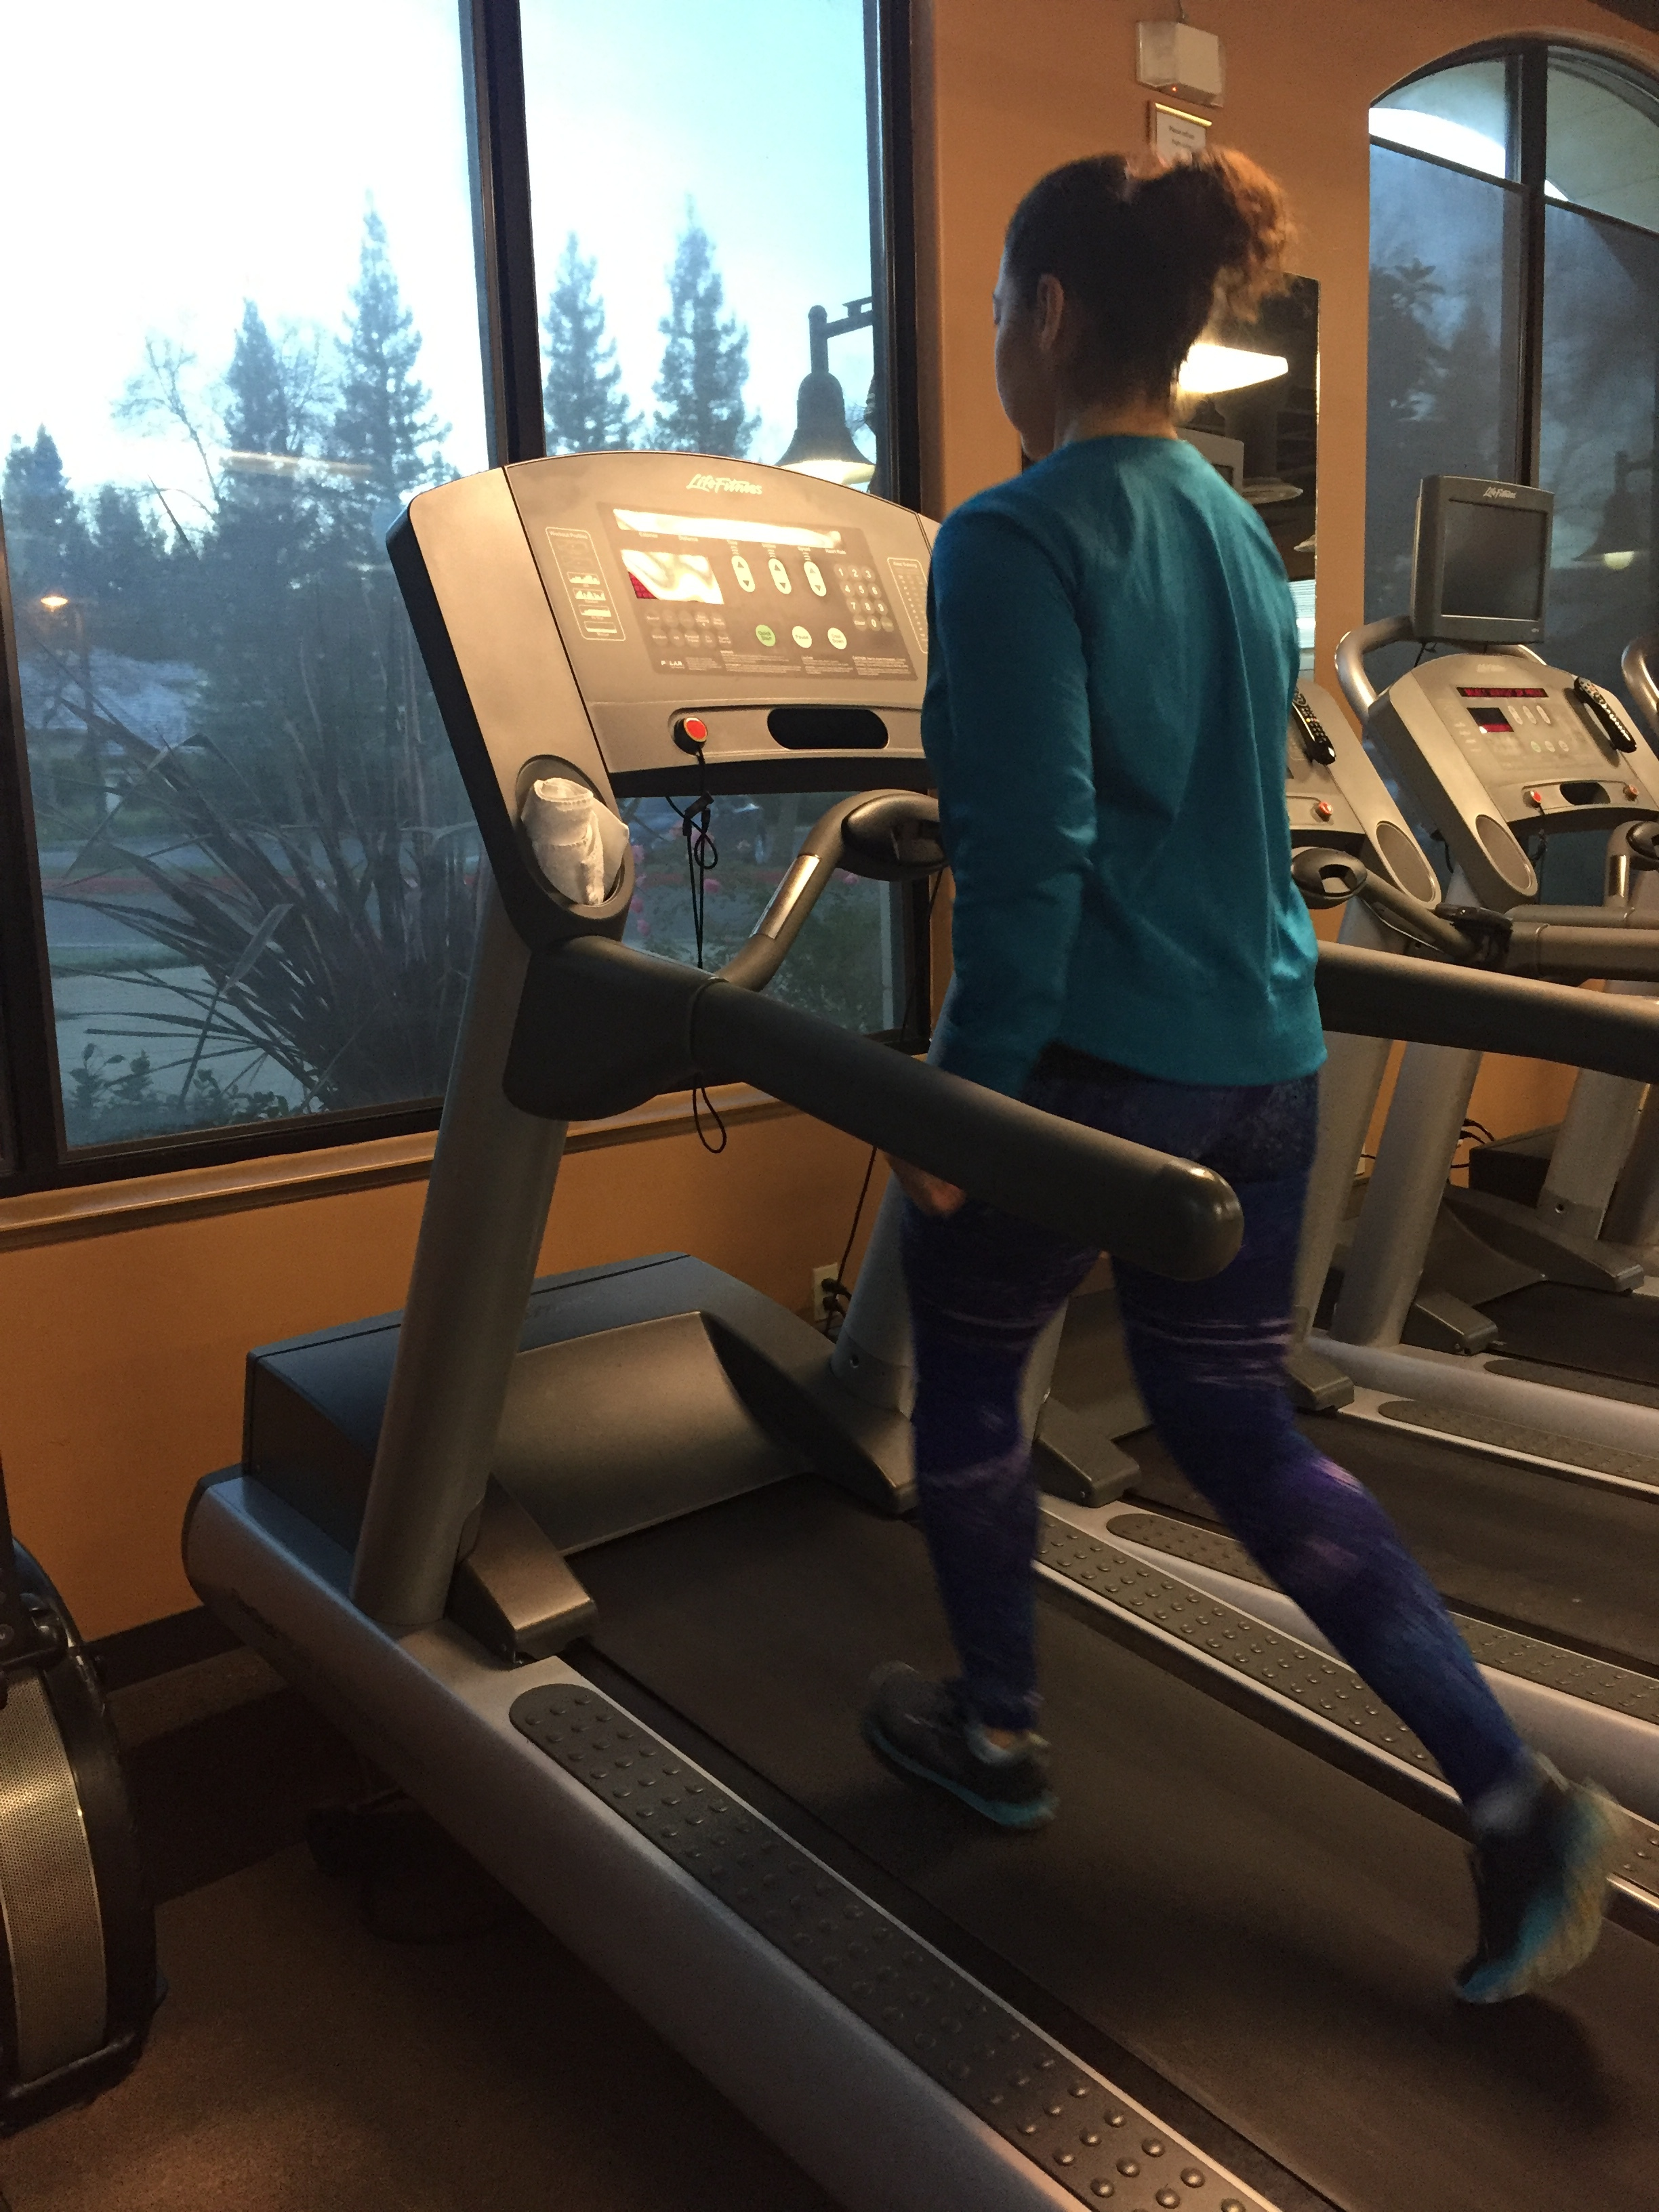 Milly Nuñez, certified personal trainer and nutrition coach, demonstrates proper posture when using the incline mode.